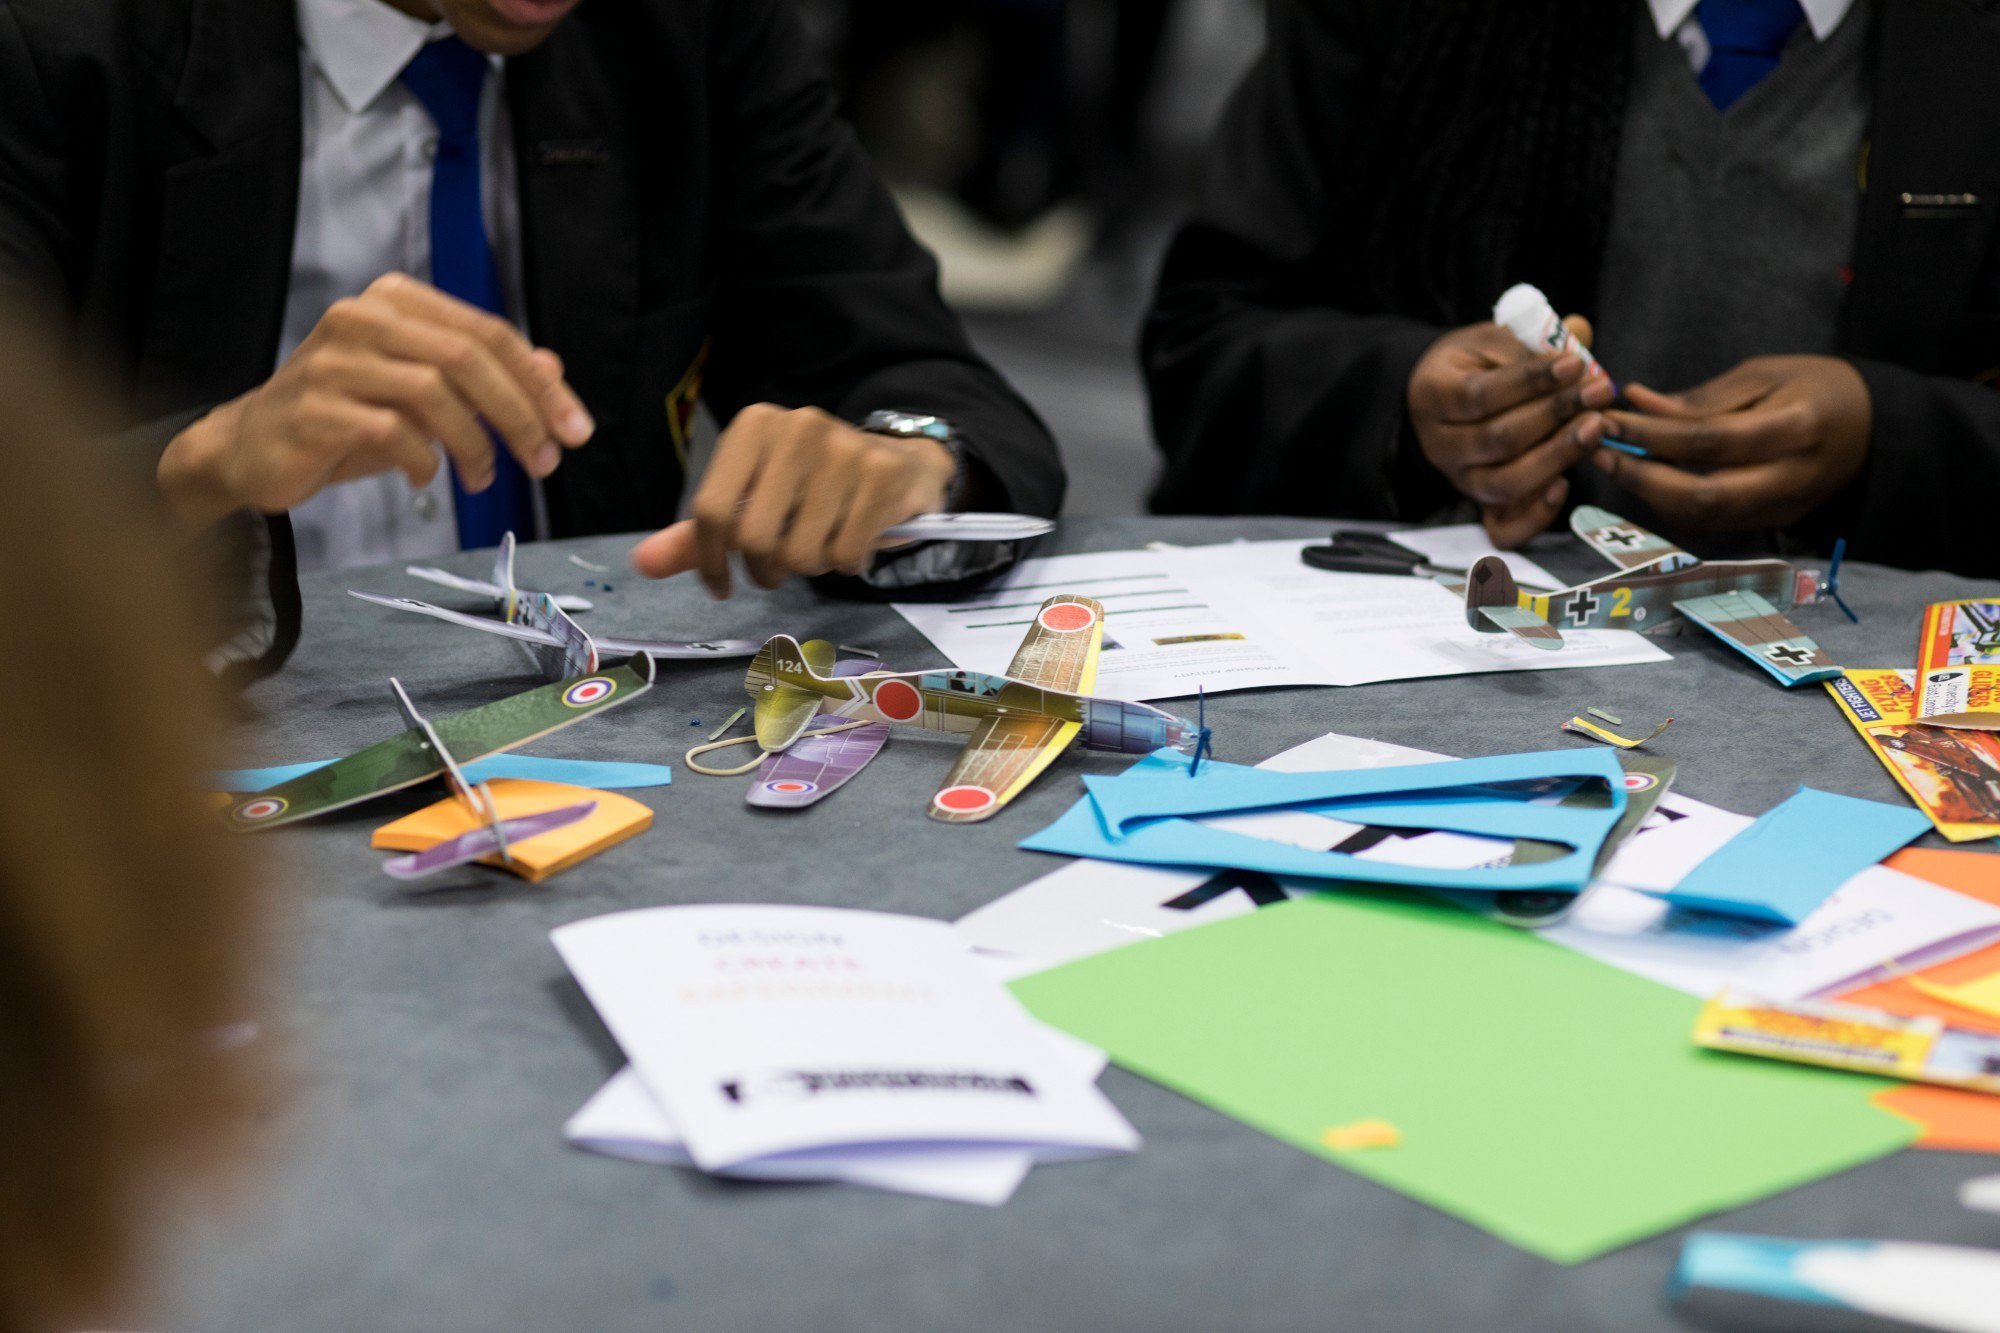 Small model planes and coloured paper on a table, with children working on them